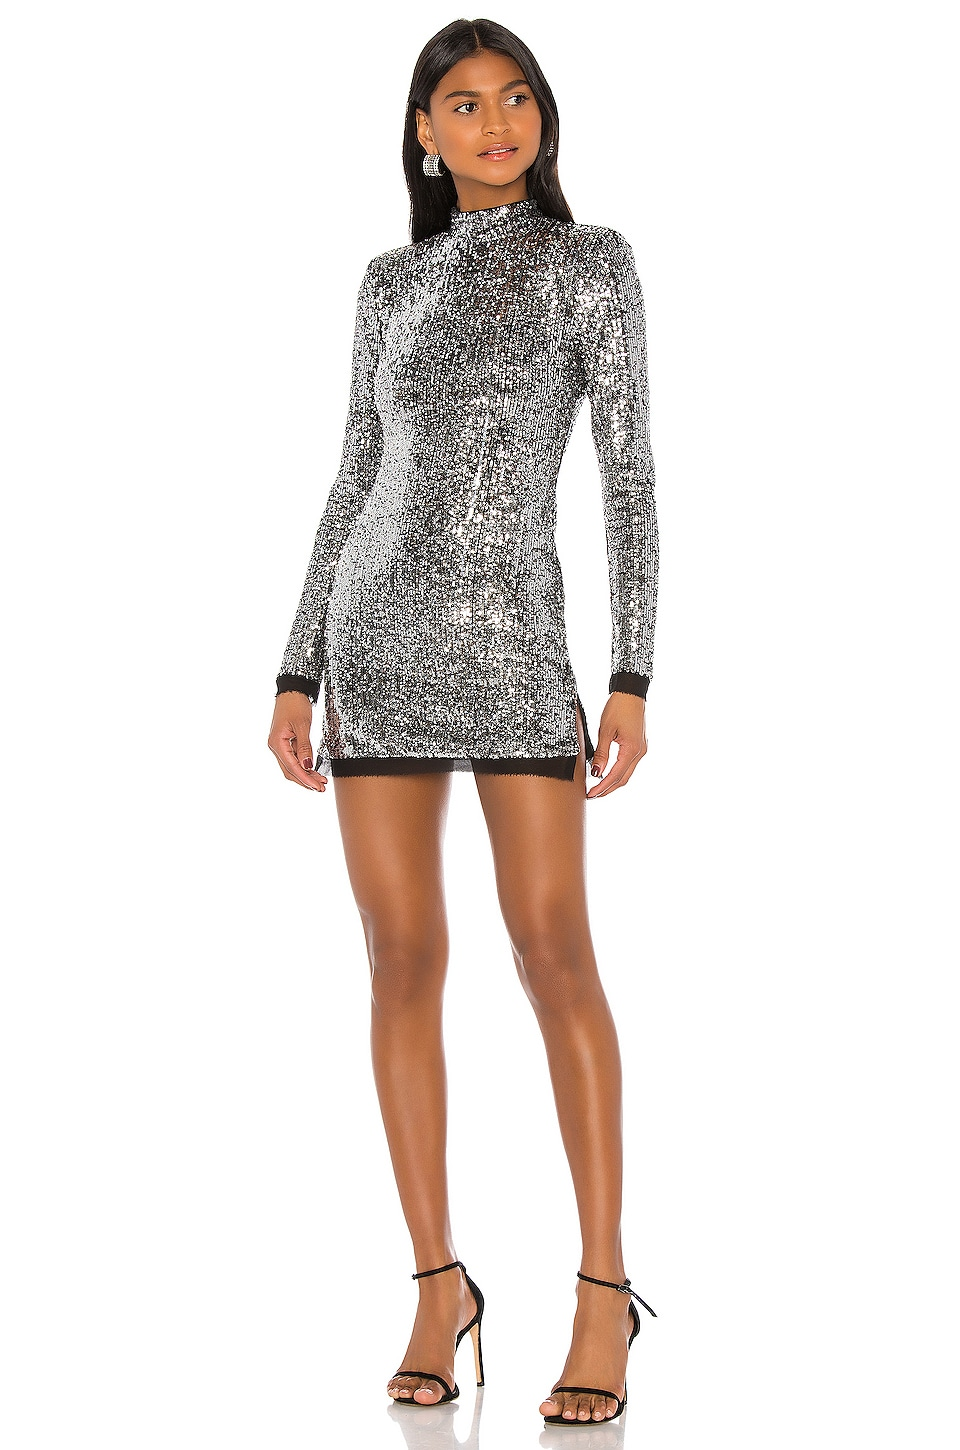 NBD Demelza Mini Dress in Silver